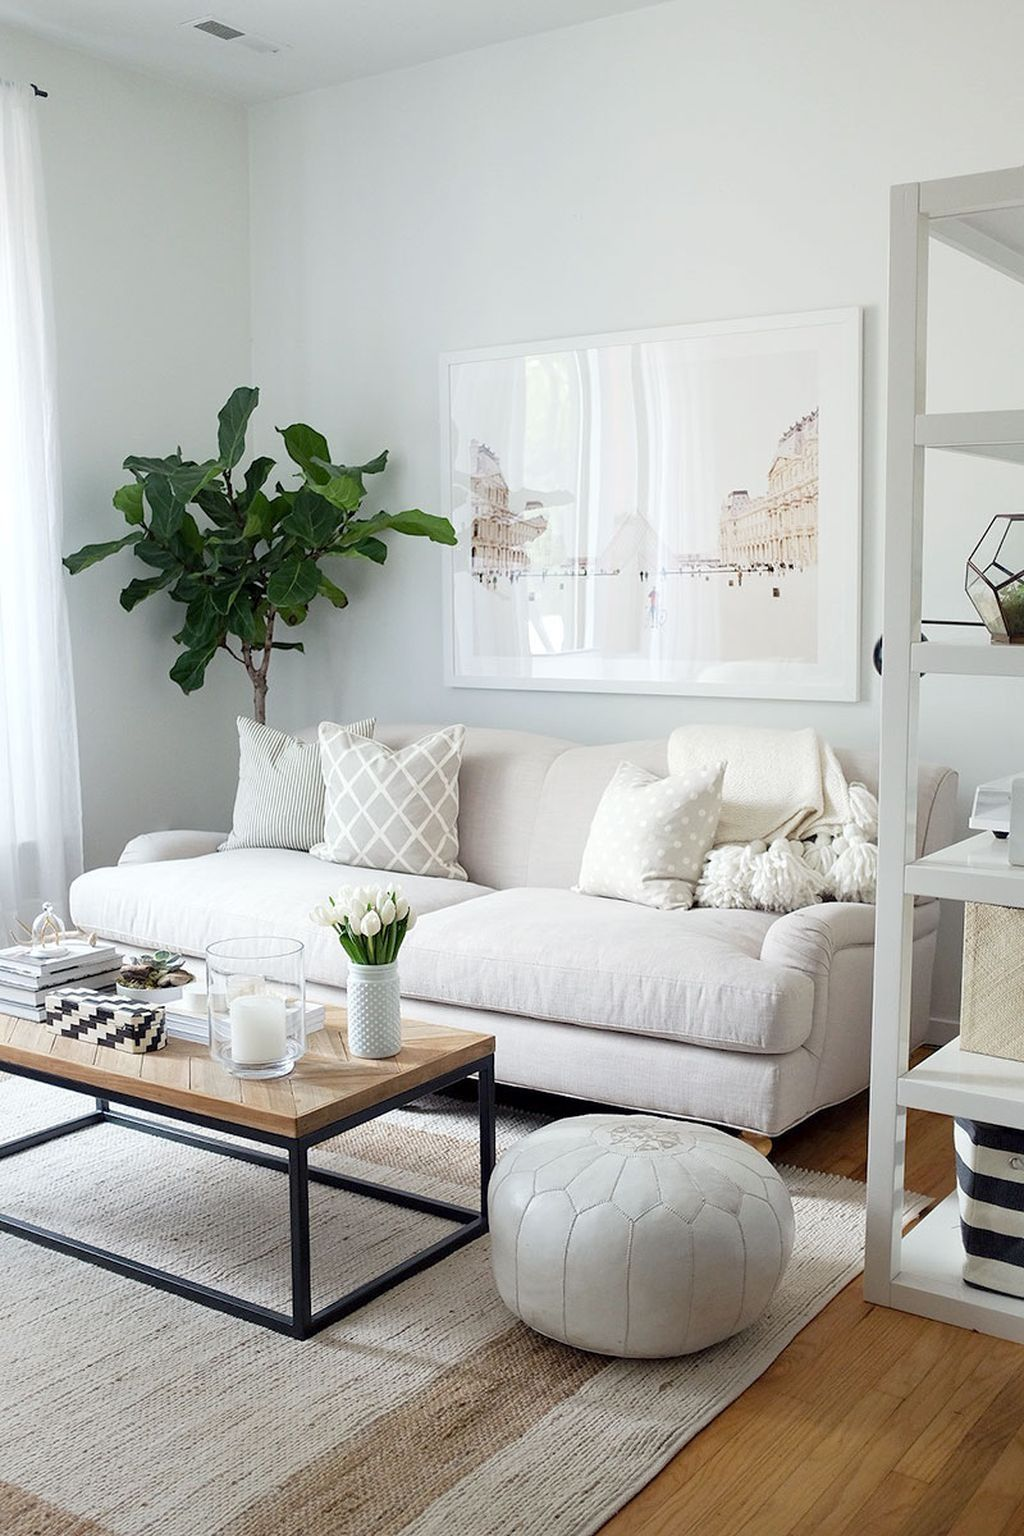 88 Creative Living Room Decoration Ideas for Small Apartment | Small ...